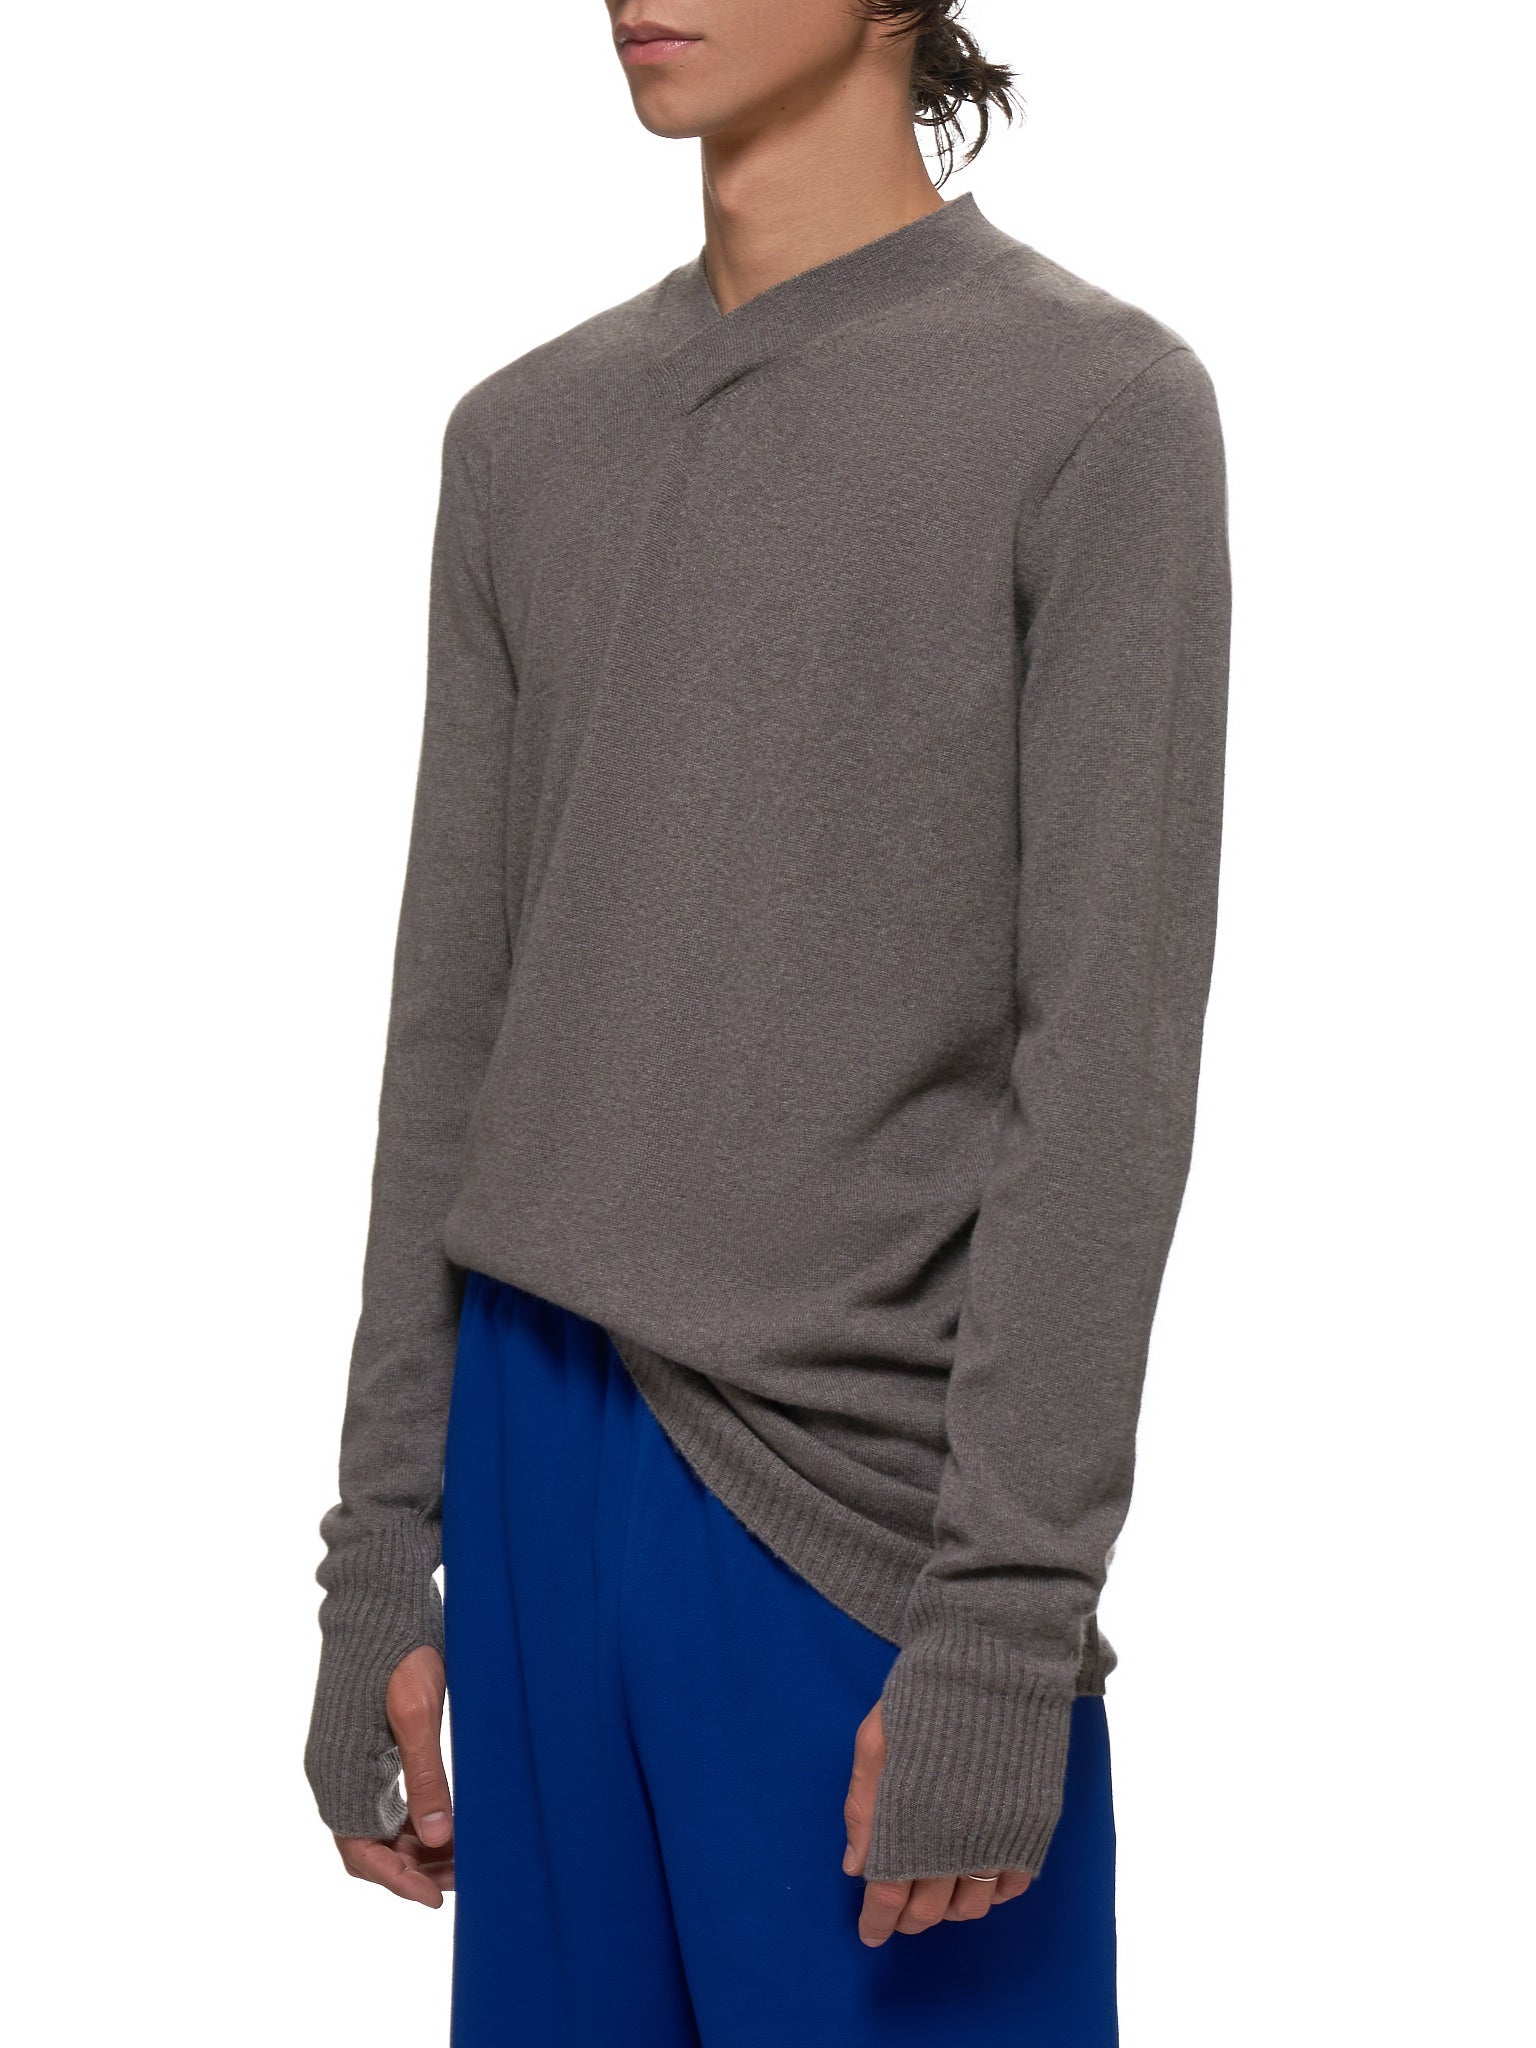 Boris Bidjan Saberi Sweater - Hlorenzo Side